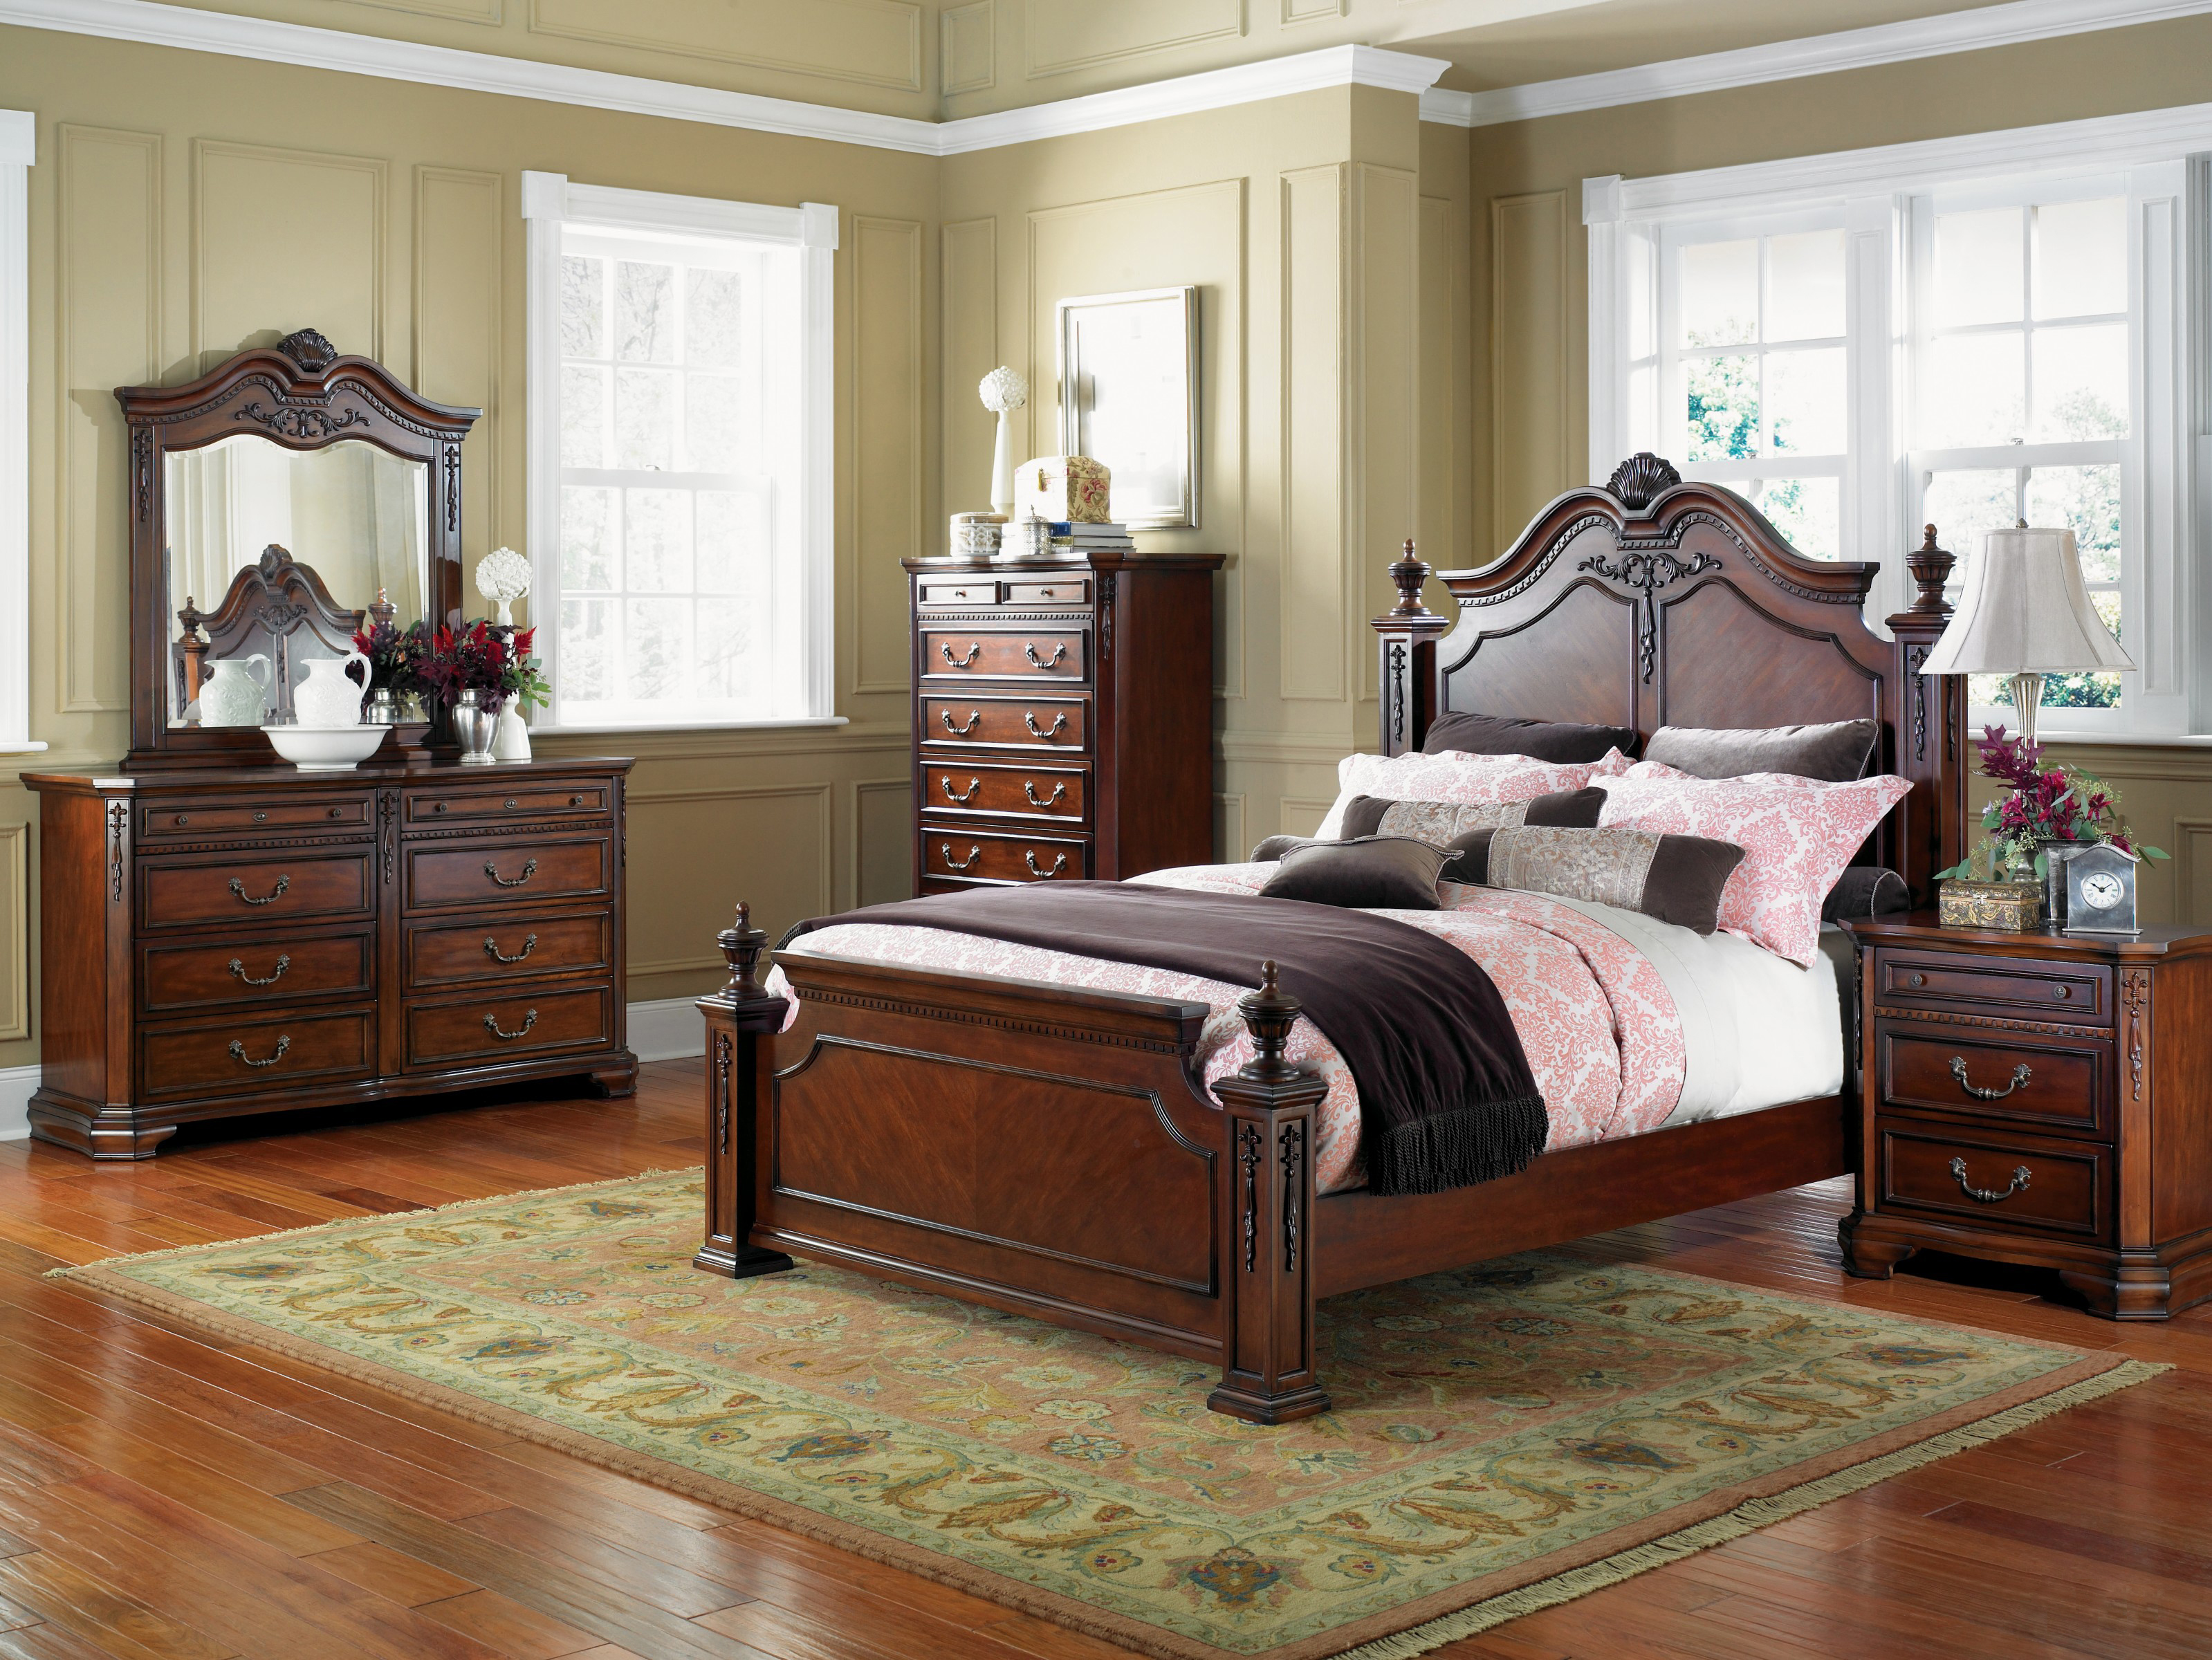 Bedroom furniture for Bedroom ideas with furniture